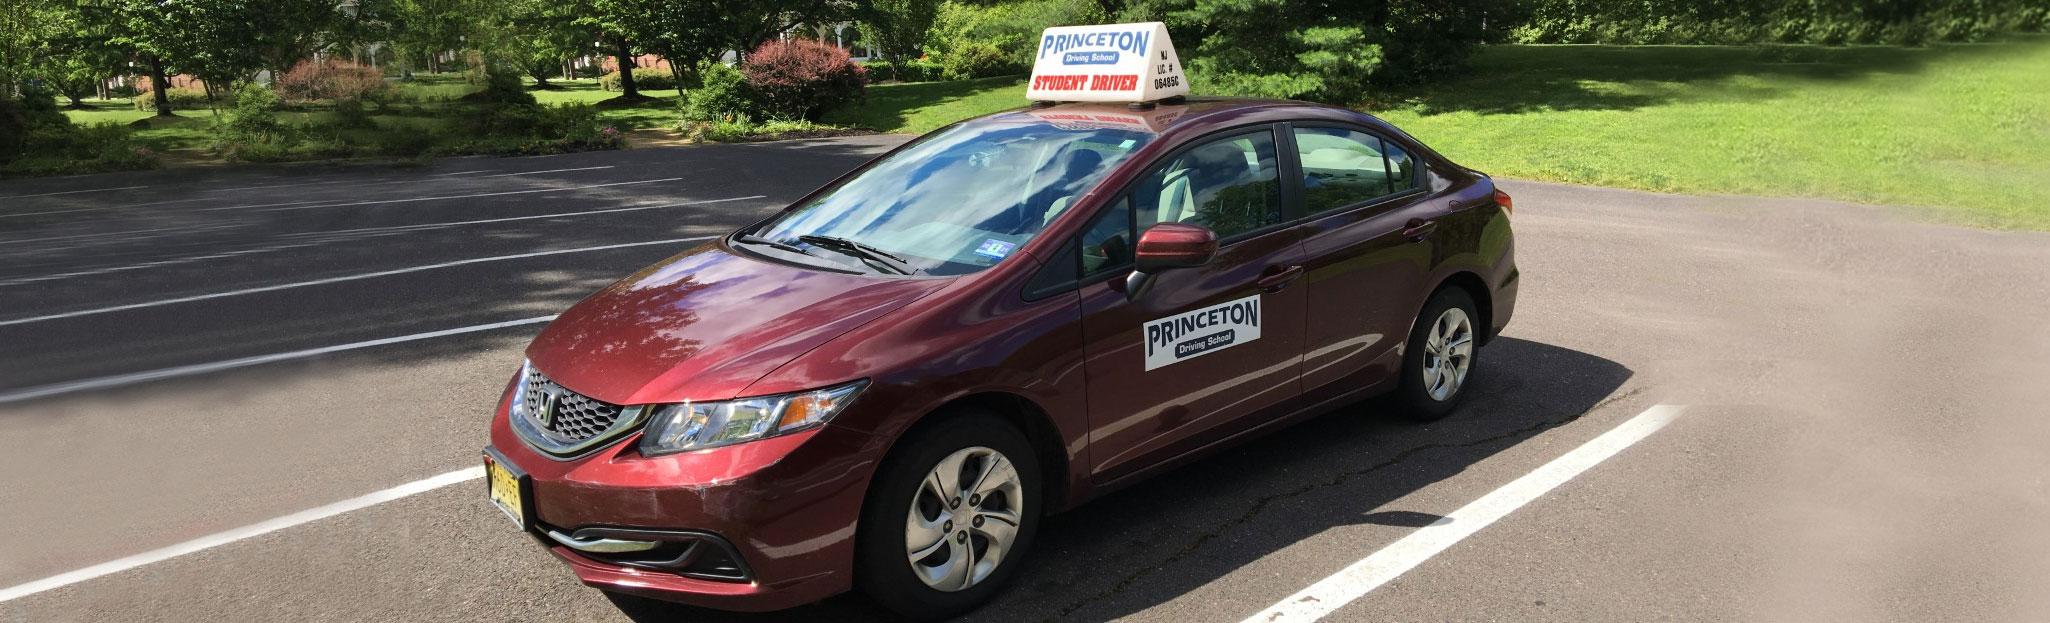 Princeton Driving School Resources